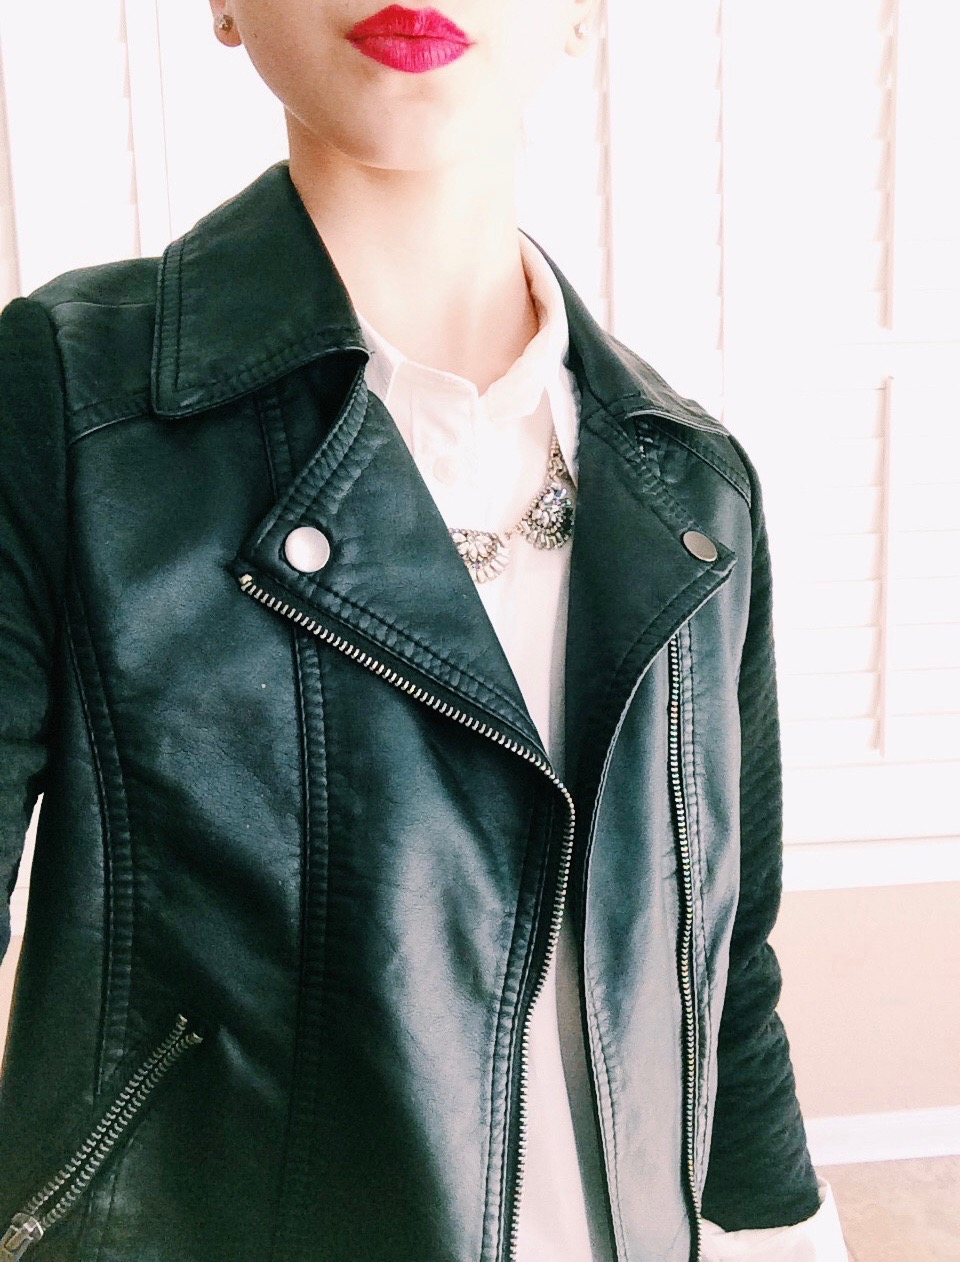 Shirt: Madewell, Leather Jacket: Target, Necklace: J. Crew